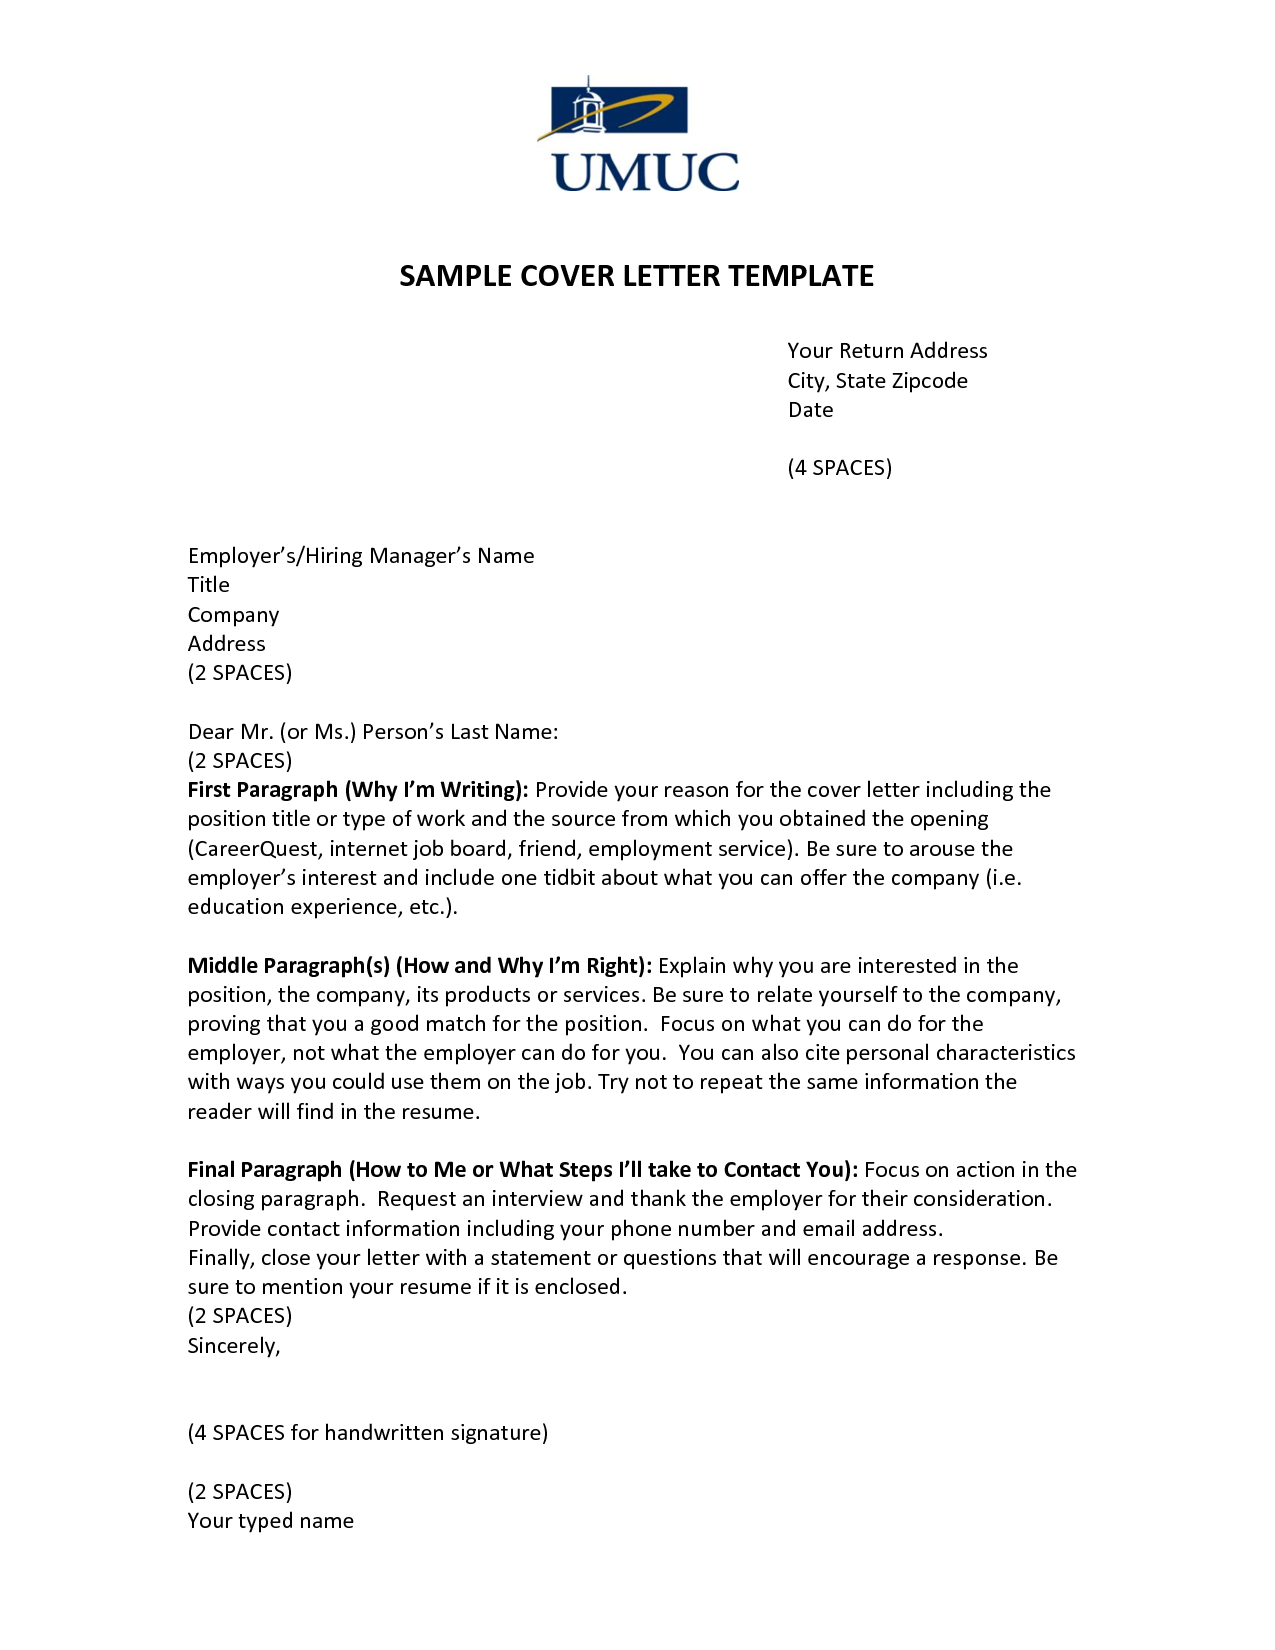 Cover Letter Dear Awesome Sample Cover Letter Template Umucover Letter Template Application Design Decoration